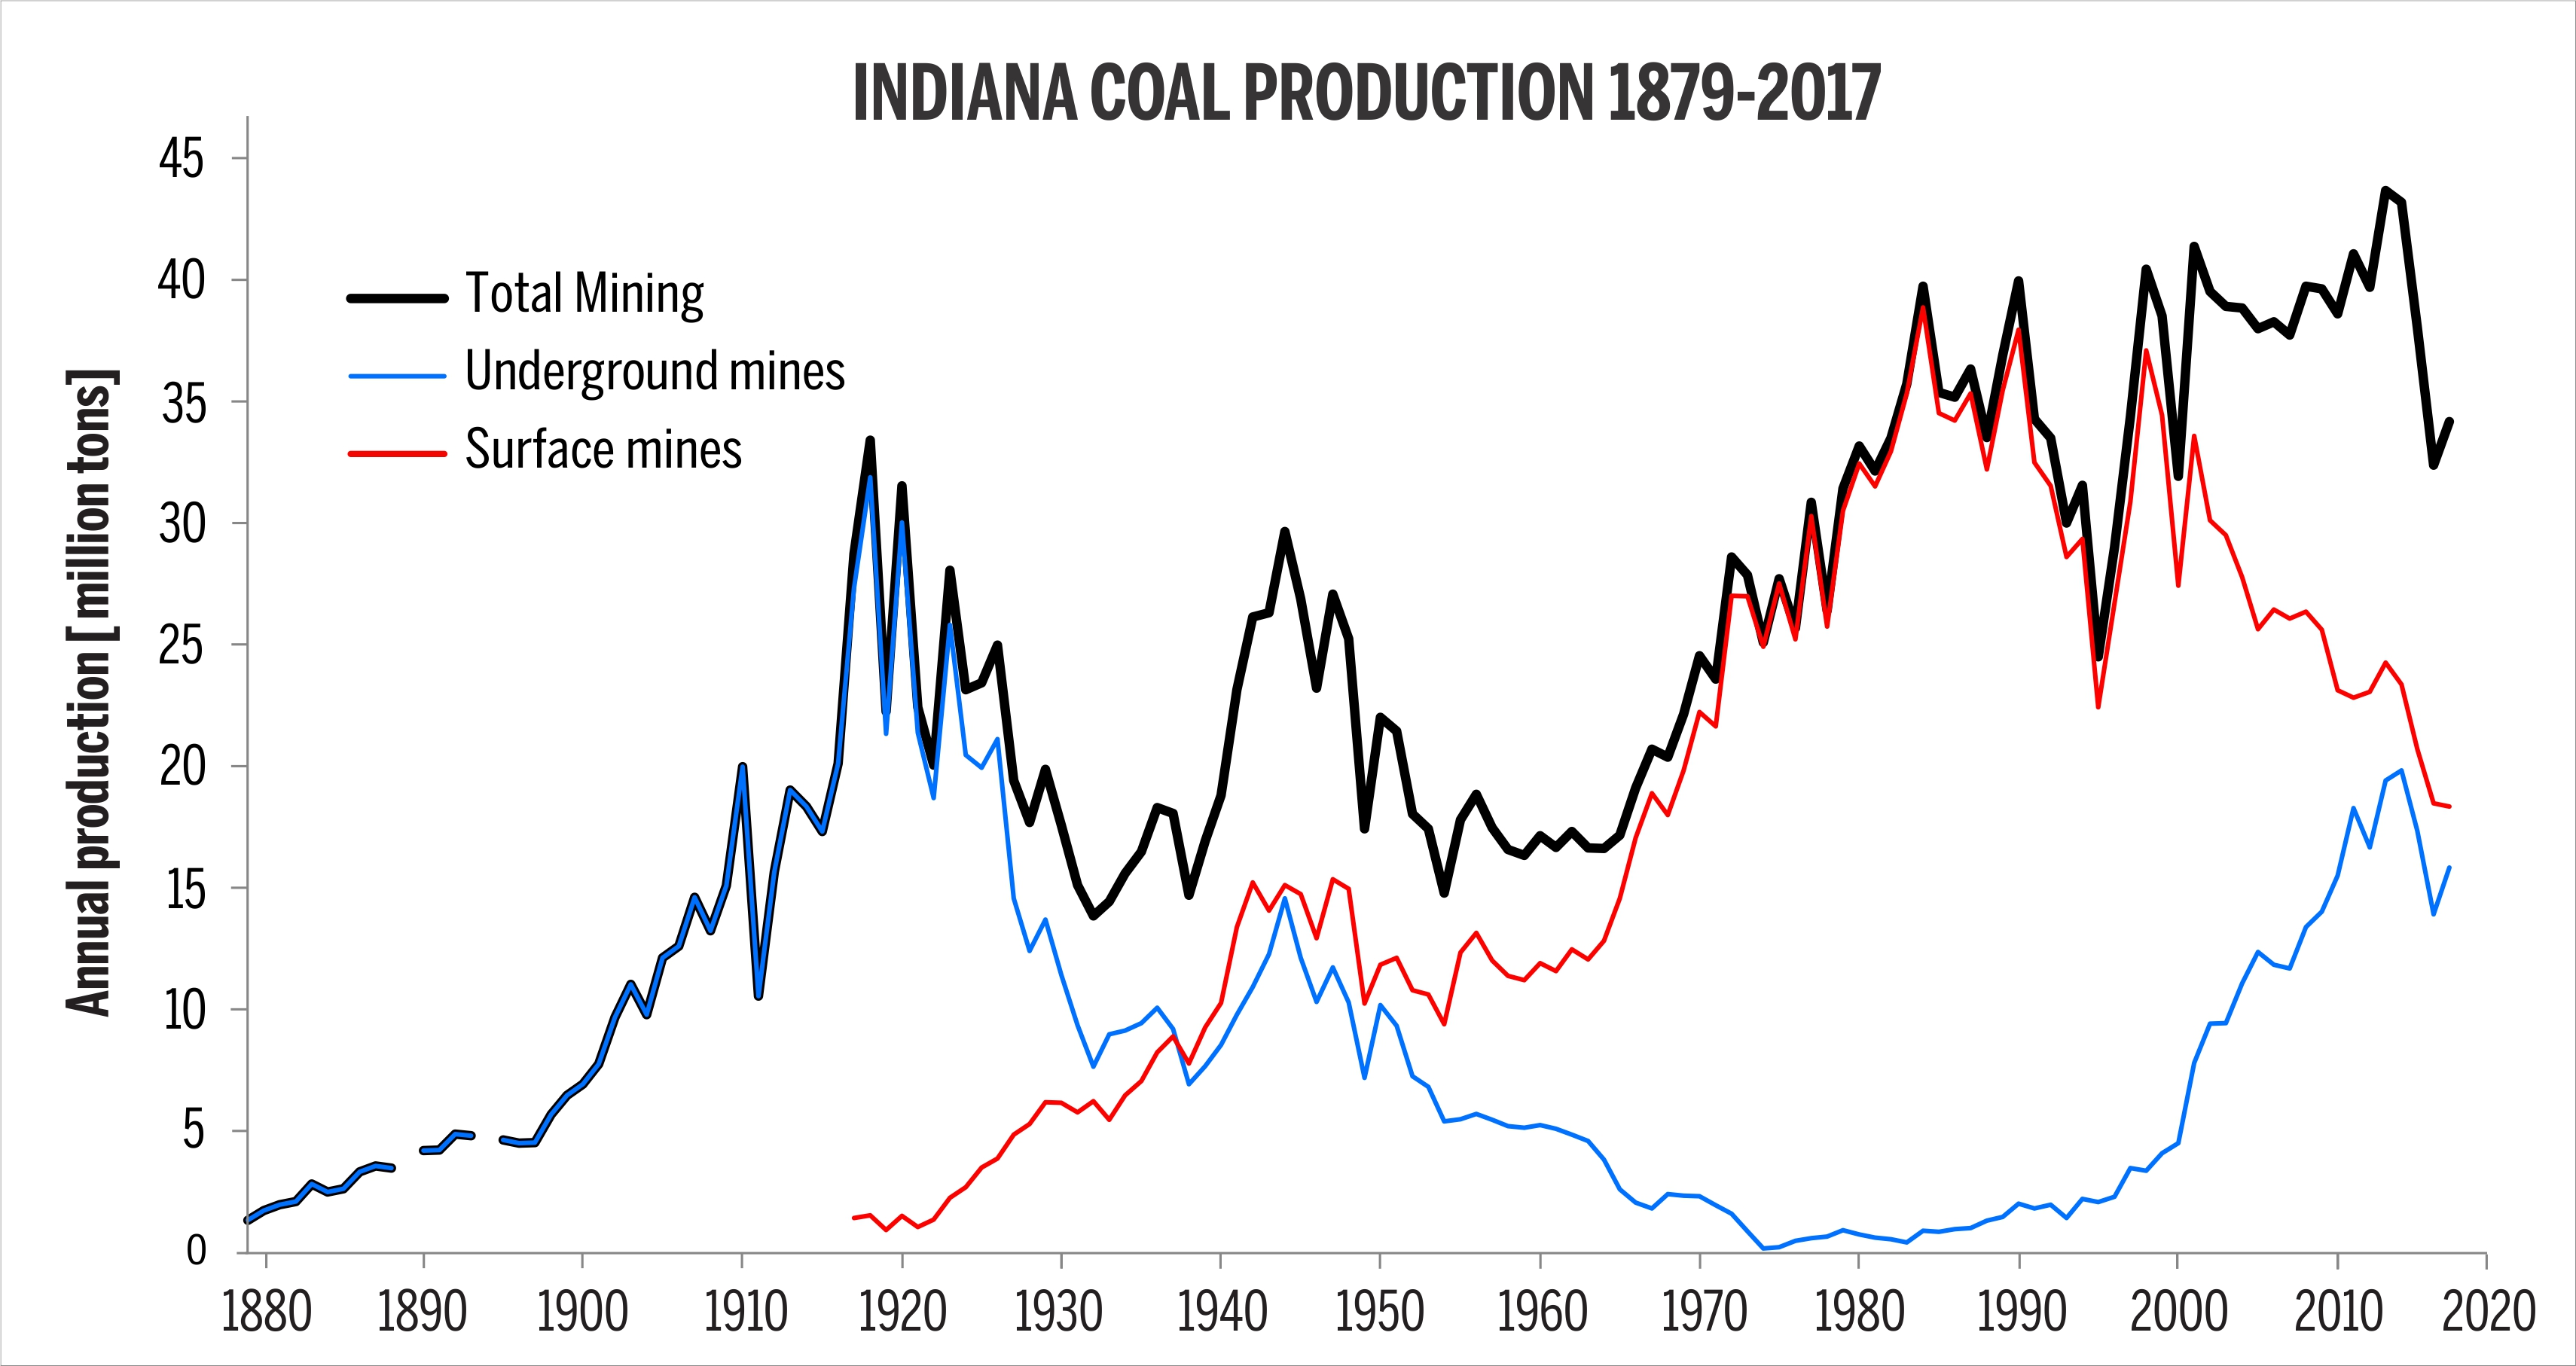 Indiana Coal Production 1879-2017